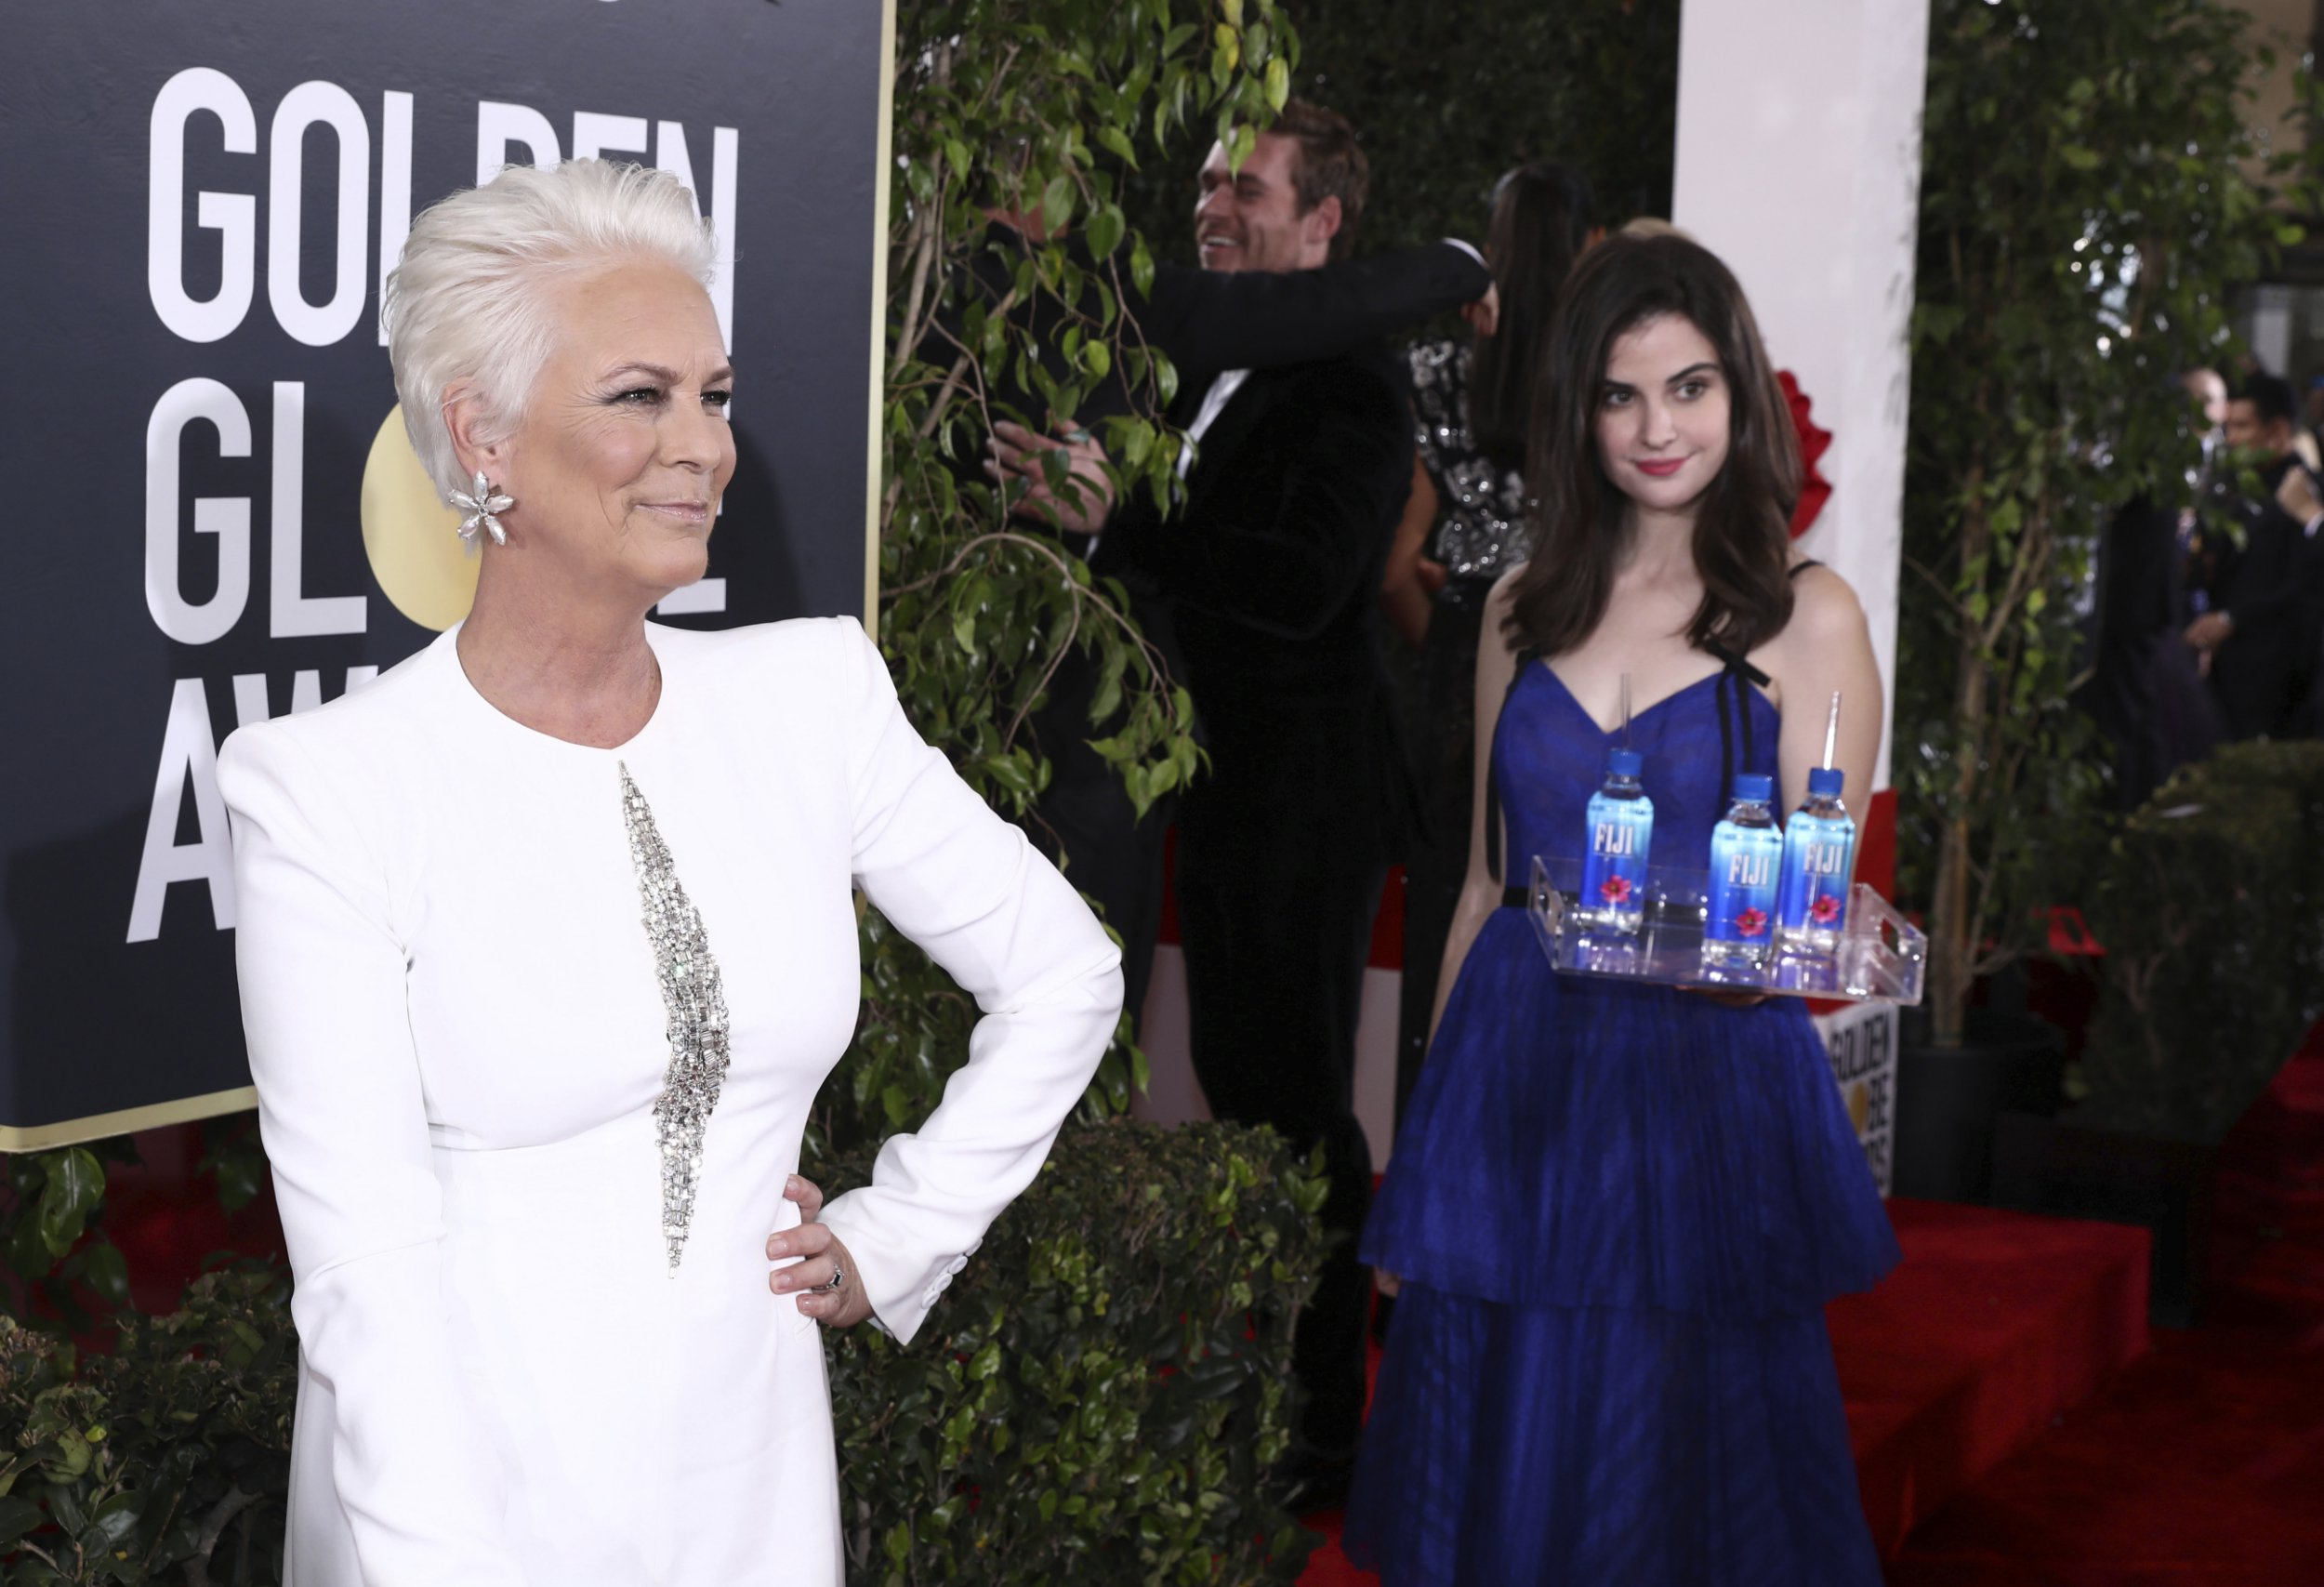 IMAGE DISTRIBUTED FOR FIJI WATER - Jamie Lee Curtis at the 76th annual Golden Globe?? Awards with FIJI Water on Sunday, Jan. 6, 2019 in Beverly Hills, Calif. (Photo by Matt Sayles/Invision for FIJI Water/AP Images)